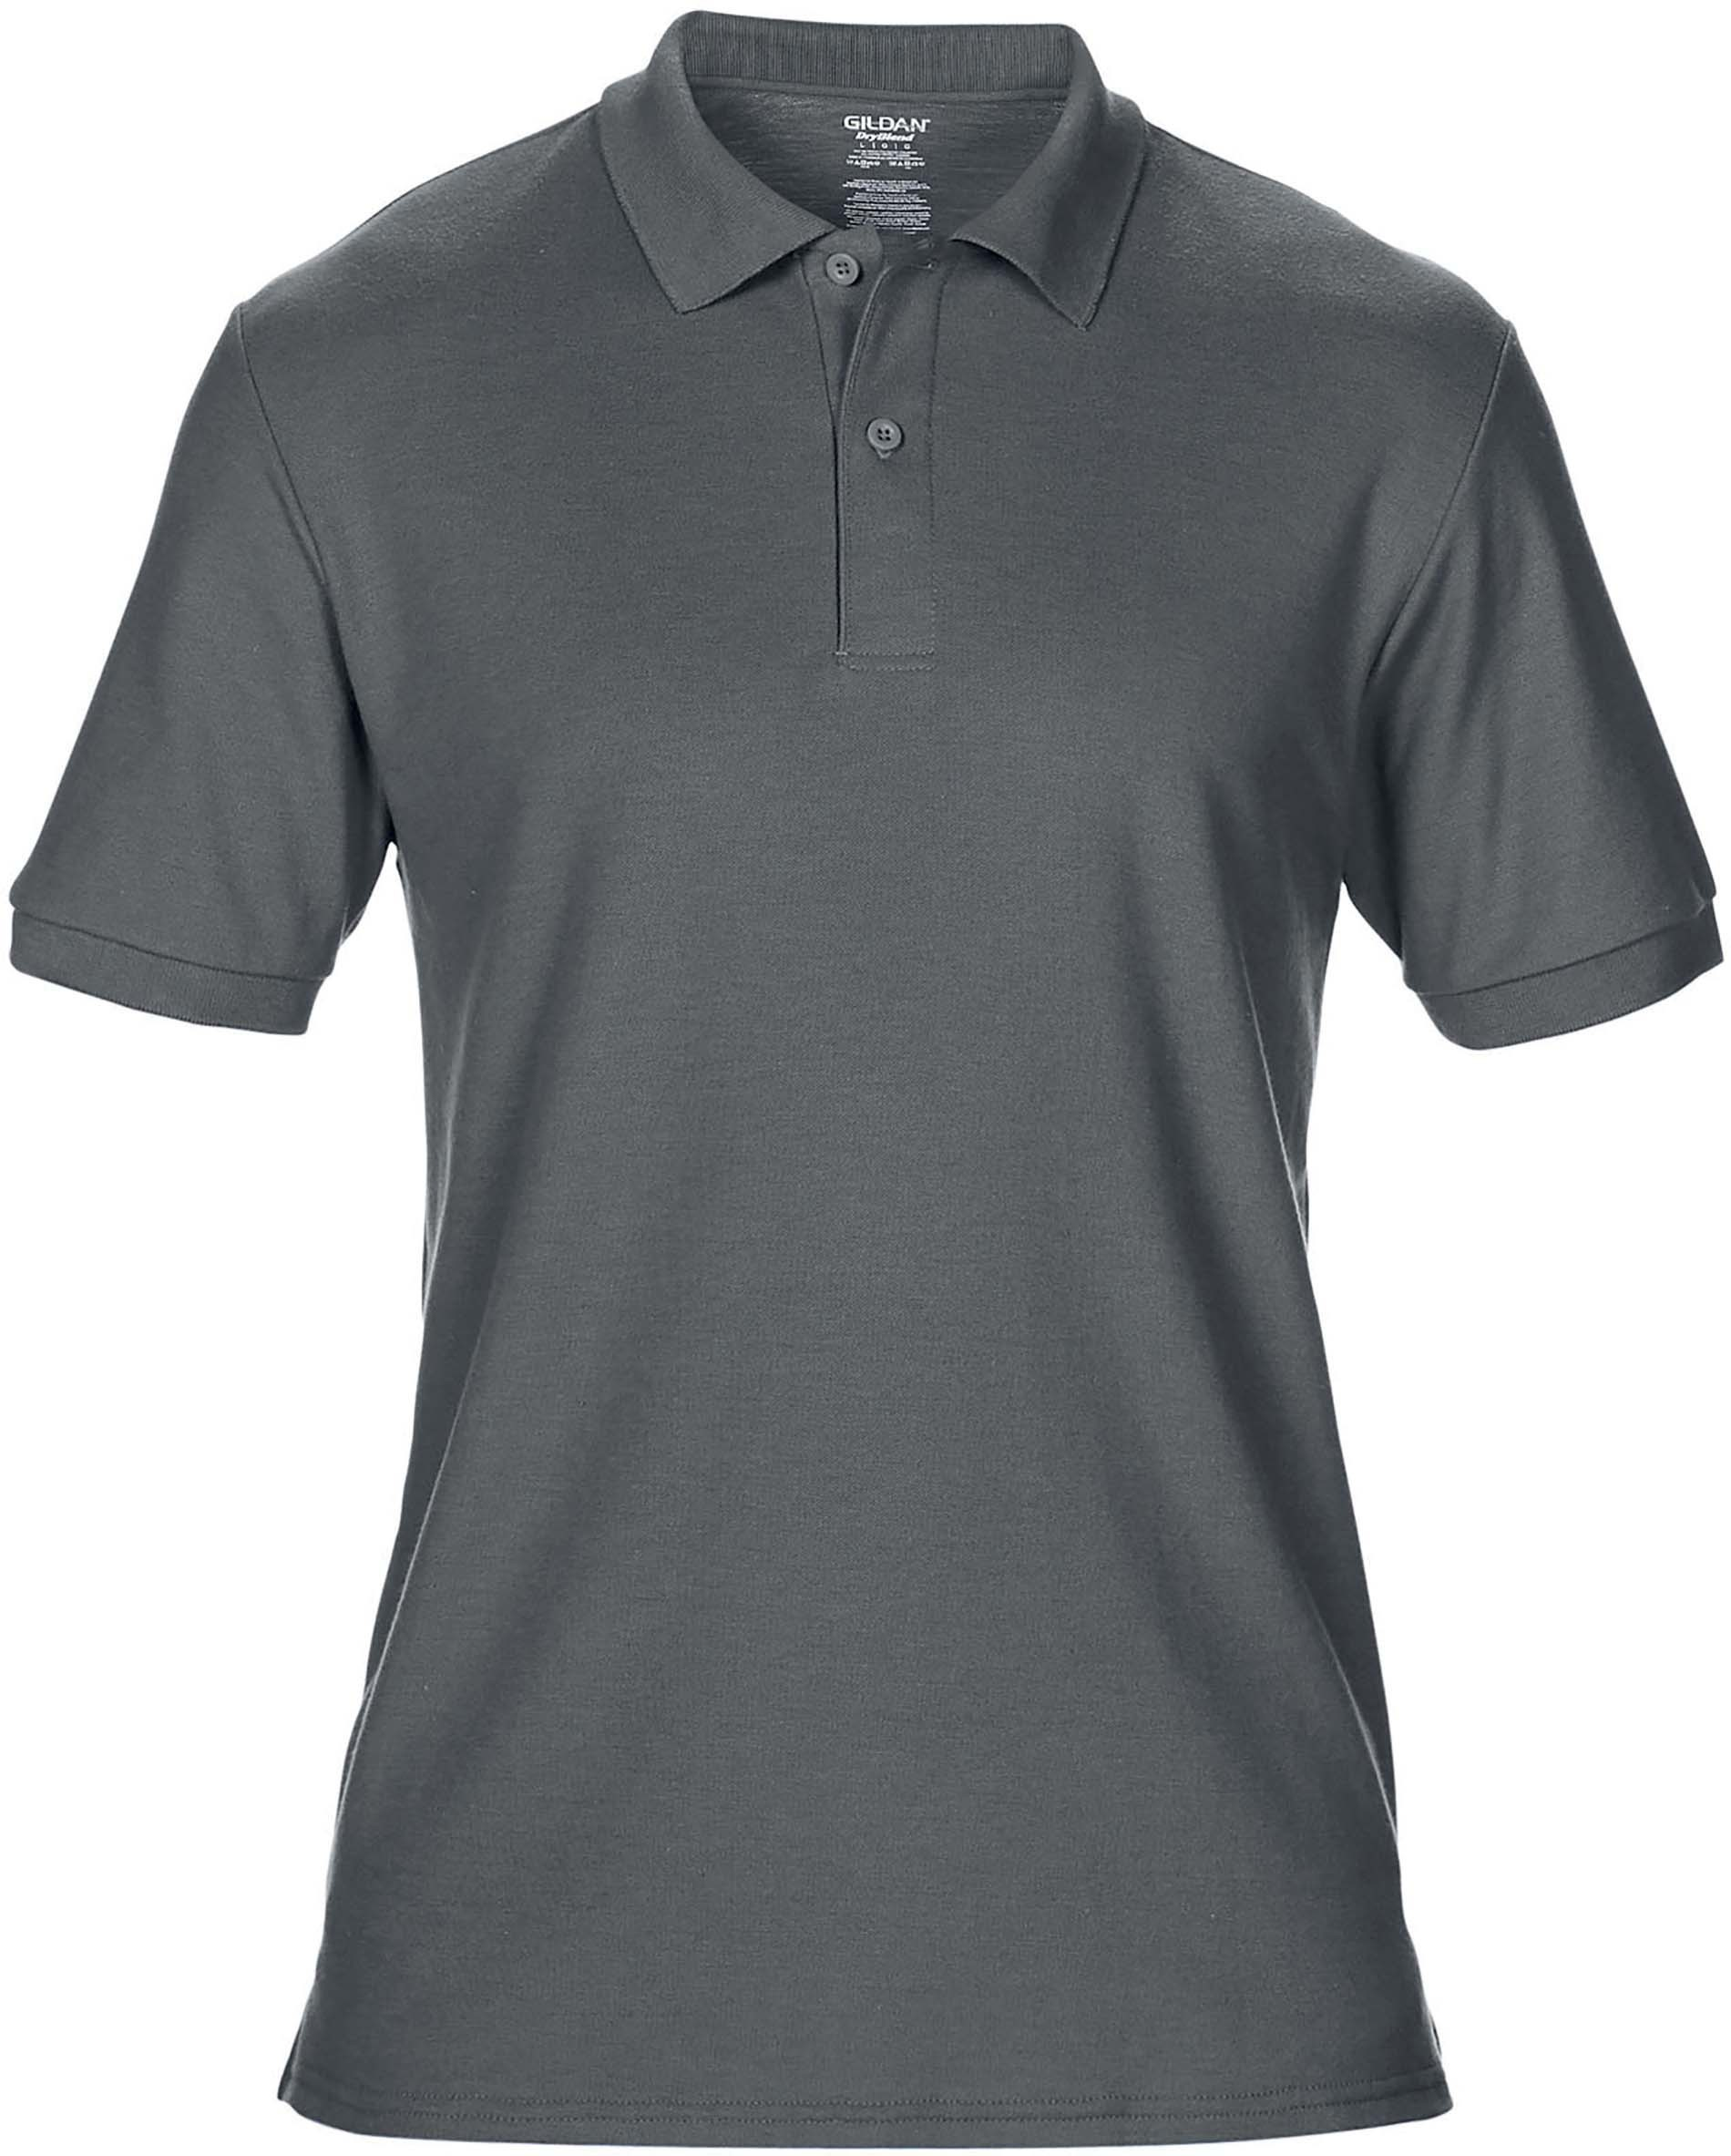 Dryblend classic-fit polo